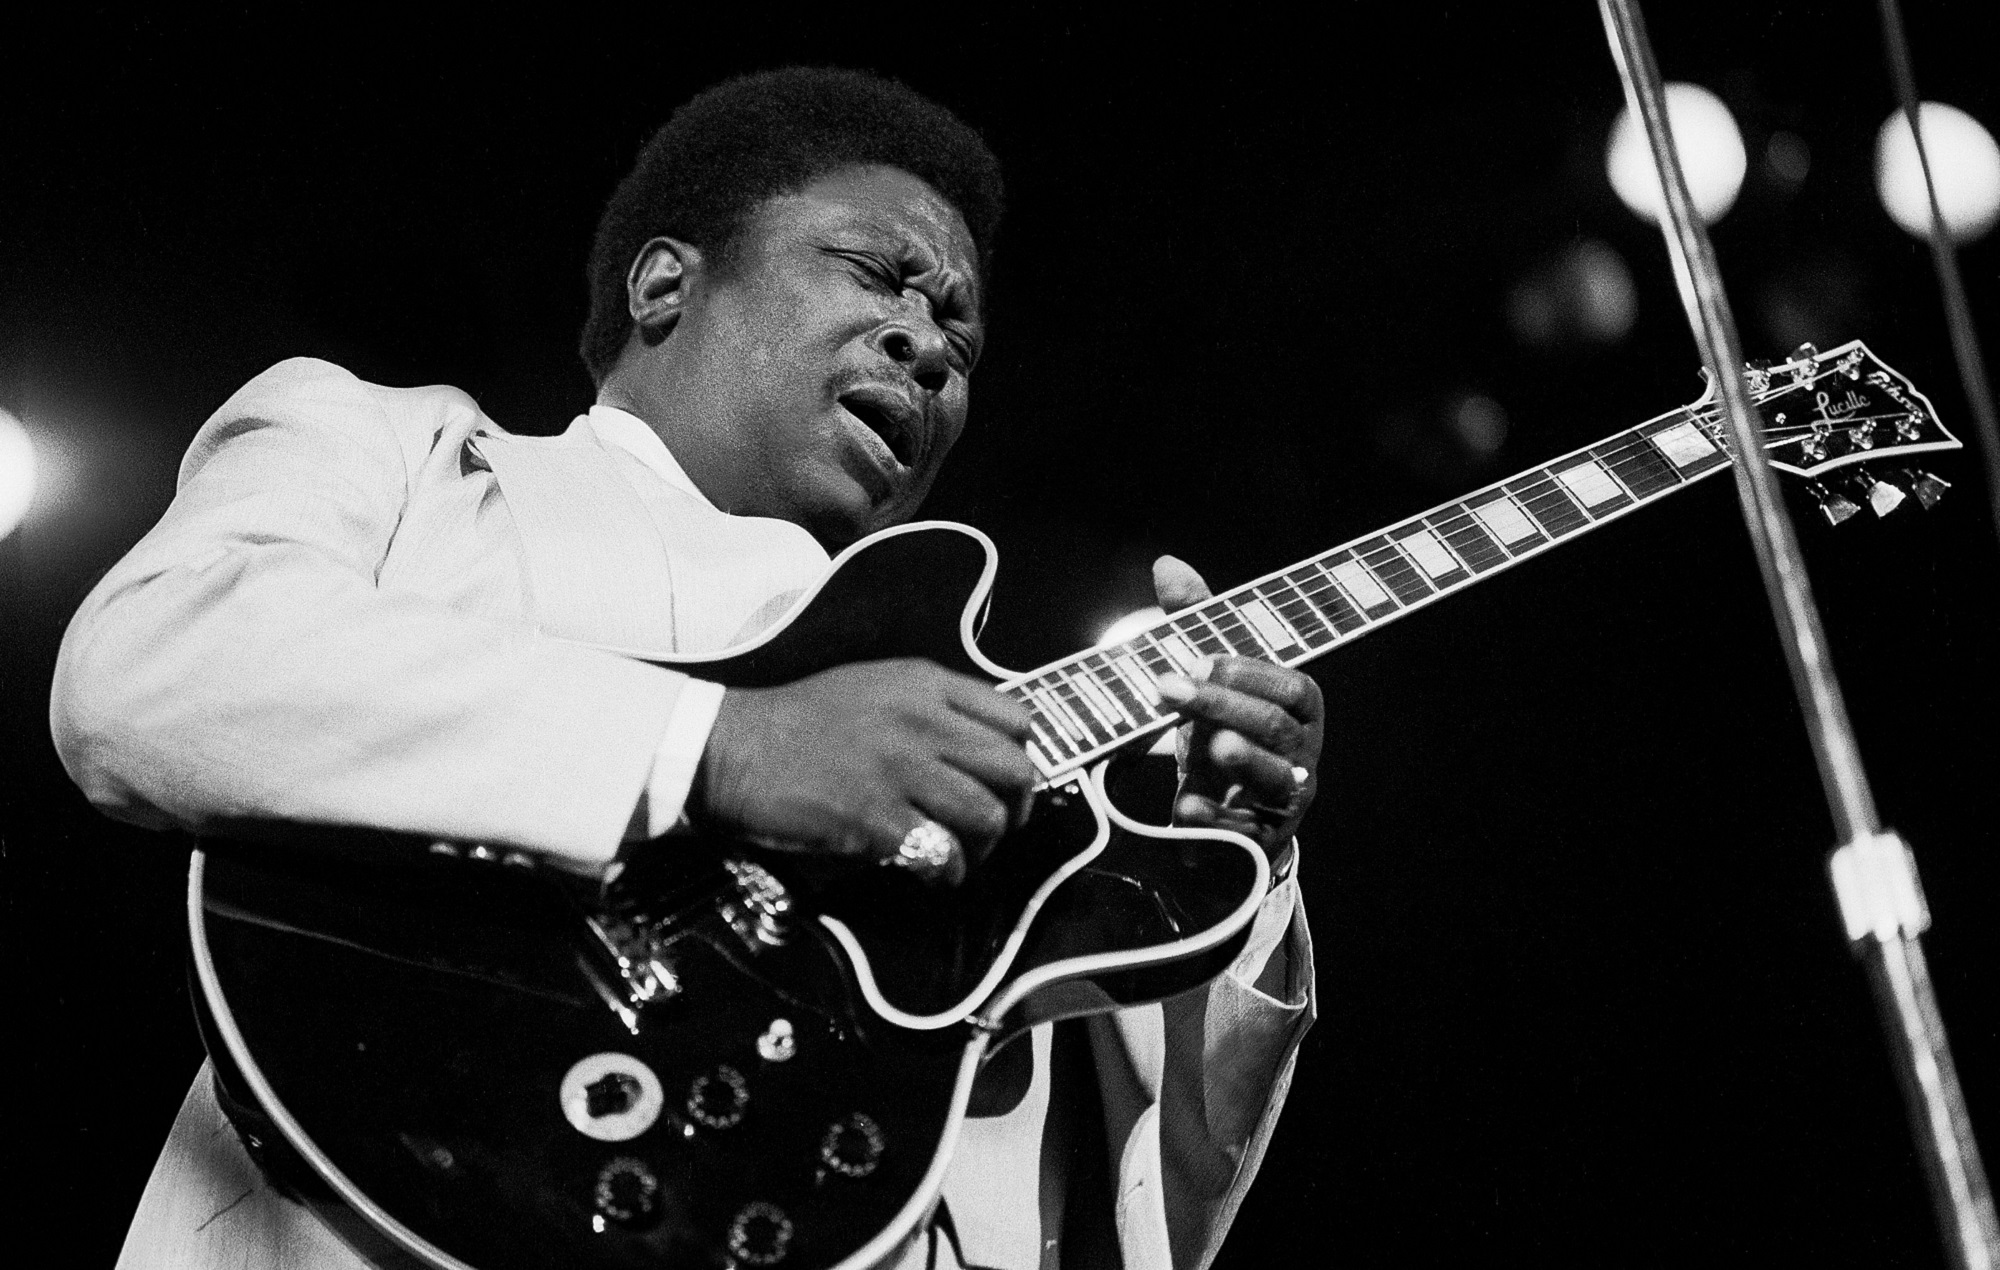 B.B. King's estate clarify that two separate films about the blues legend are in production